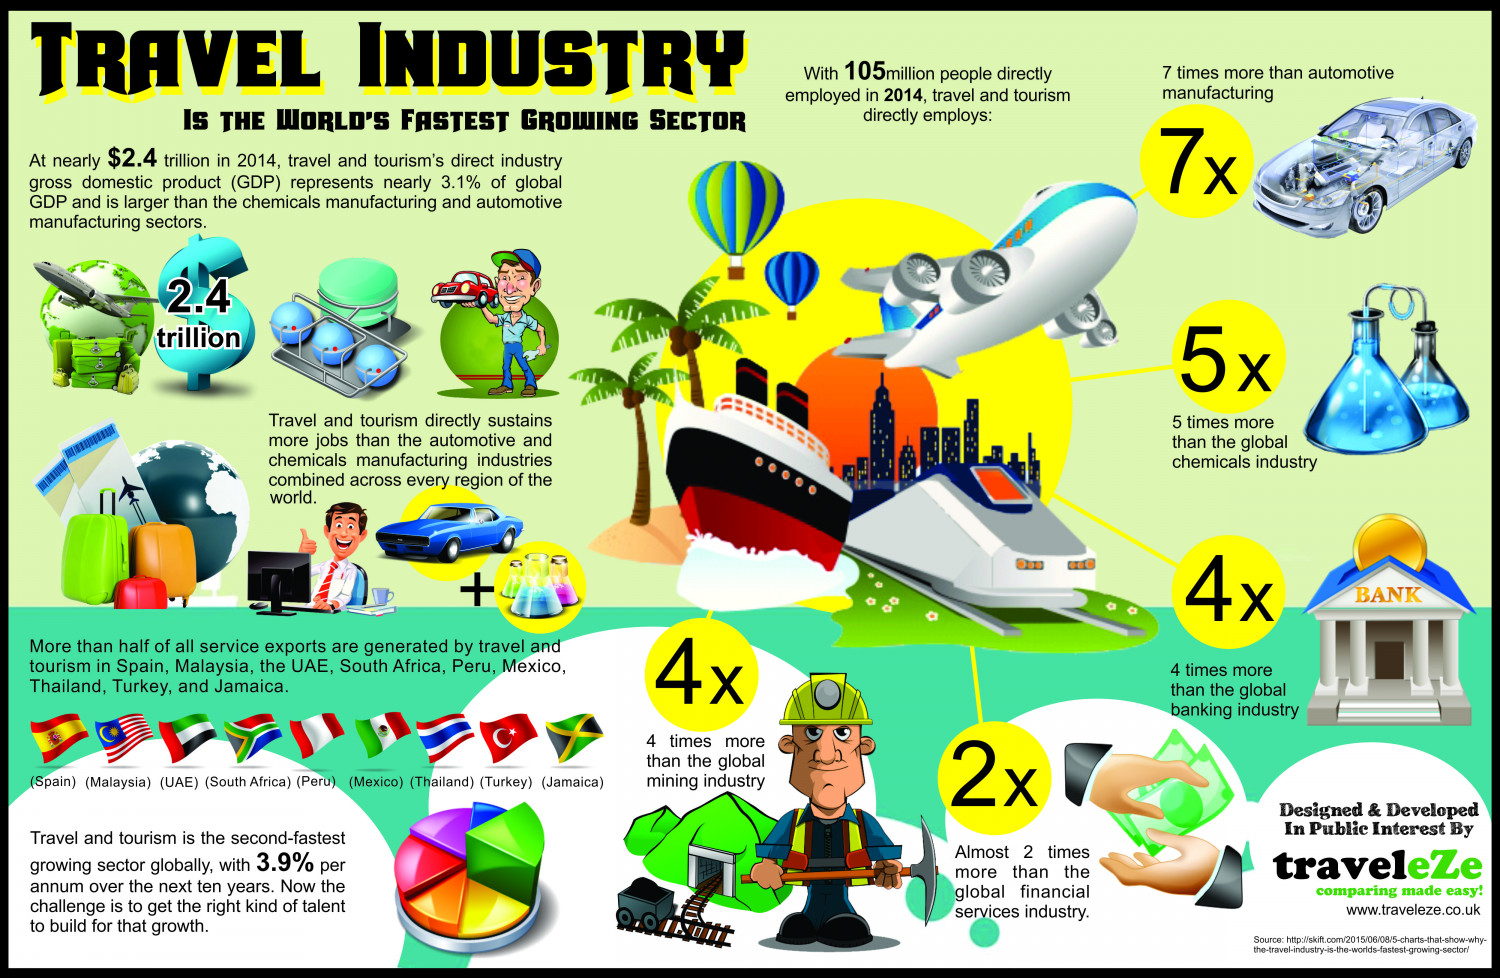 Travel Industry is the World's Fastest Growing Sector Infographic